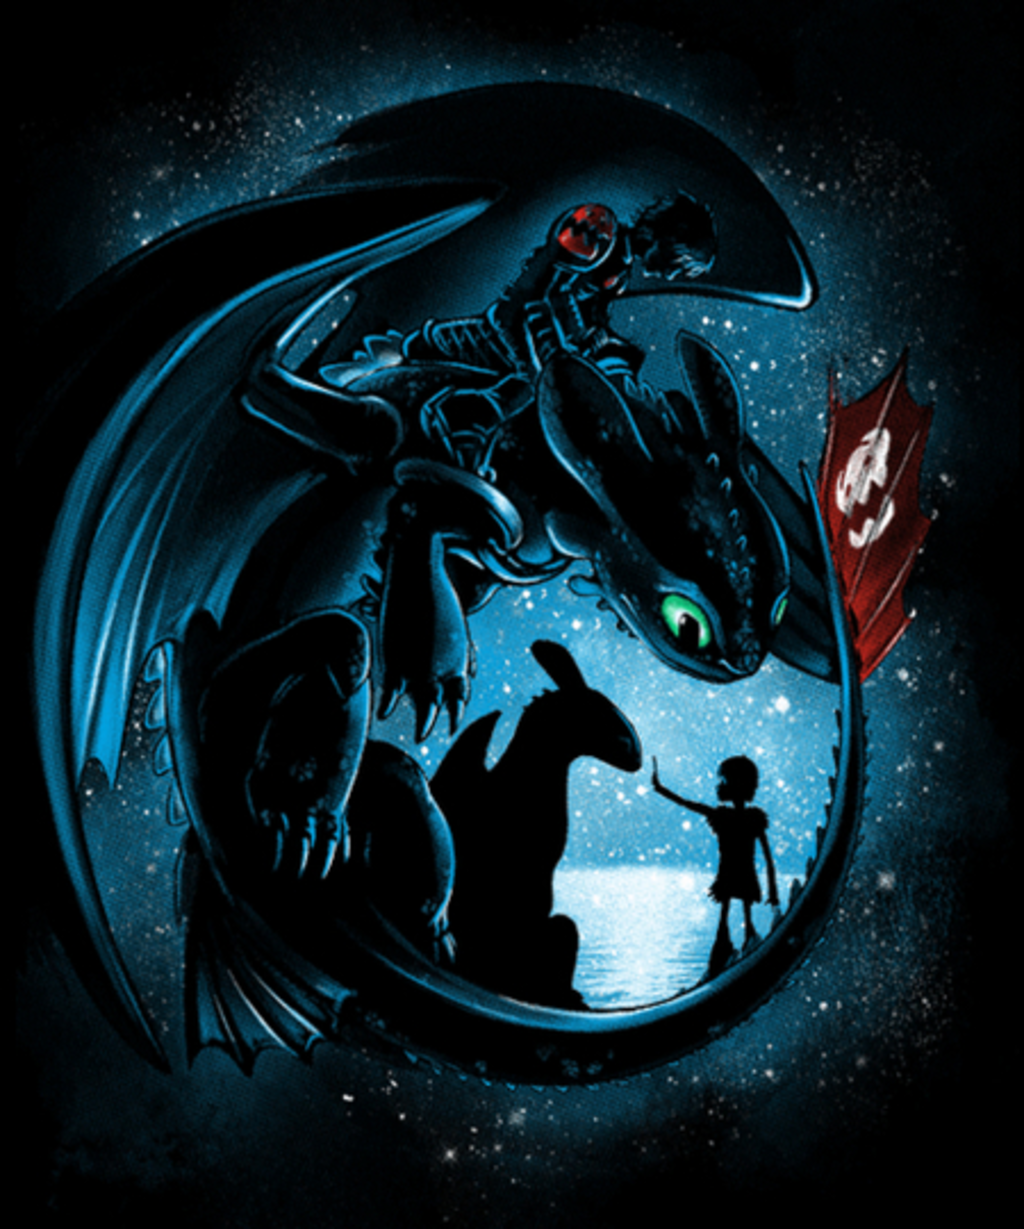 Qwertee: Yesterday and Tomorrow